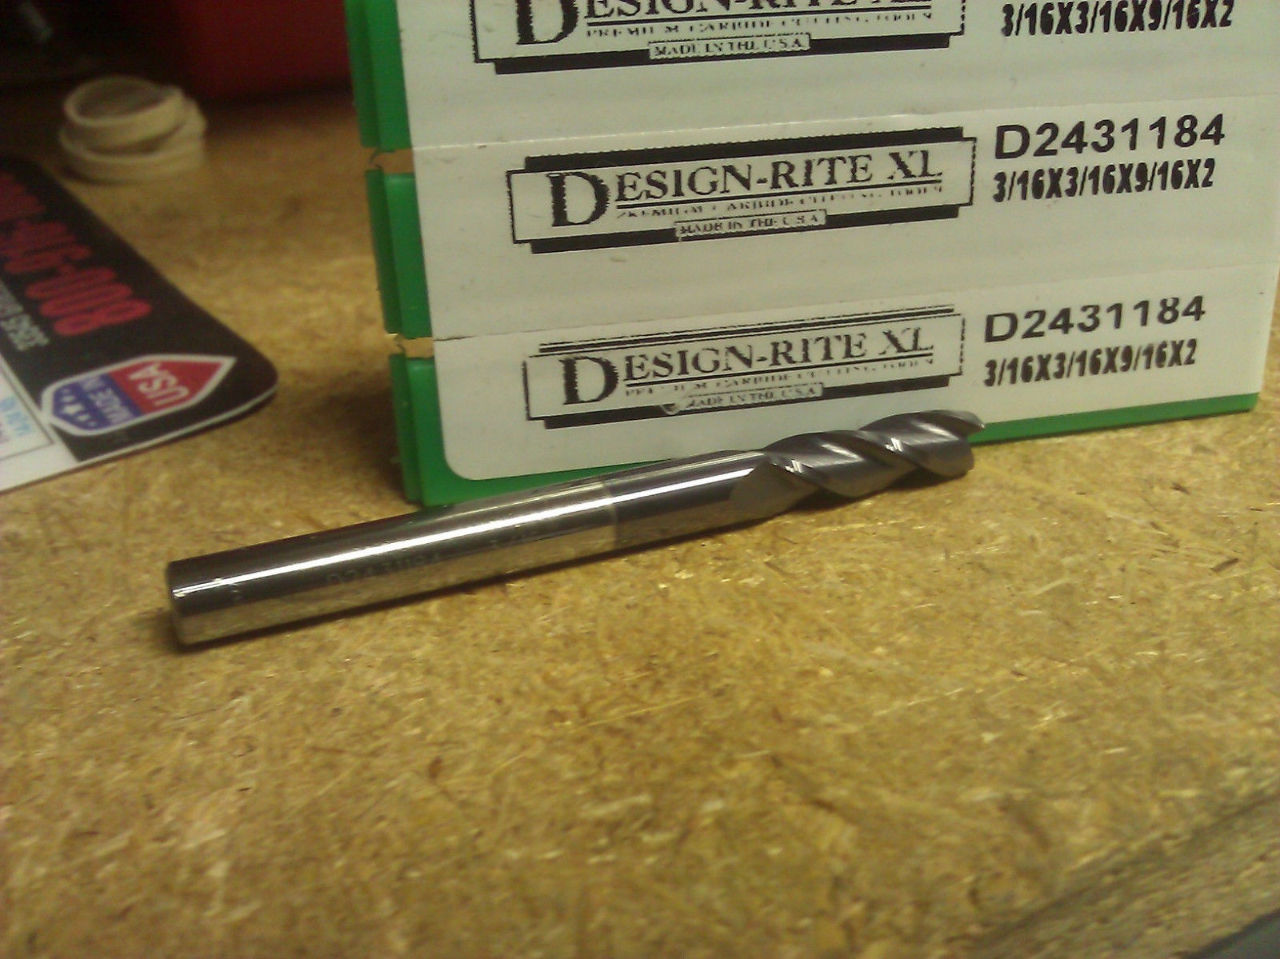 "3/16"" 3 FLUTE SE .010r TiAlN CARBIDE END MILL 3/16"" X 3/16"" X 9/16"" X 2"""